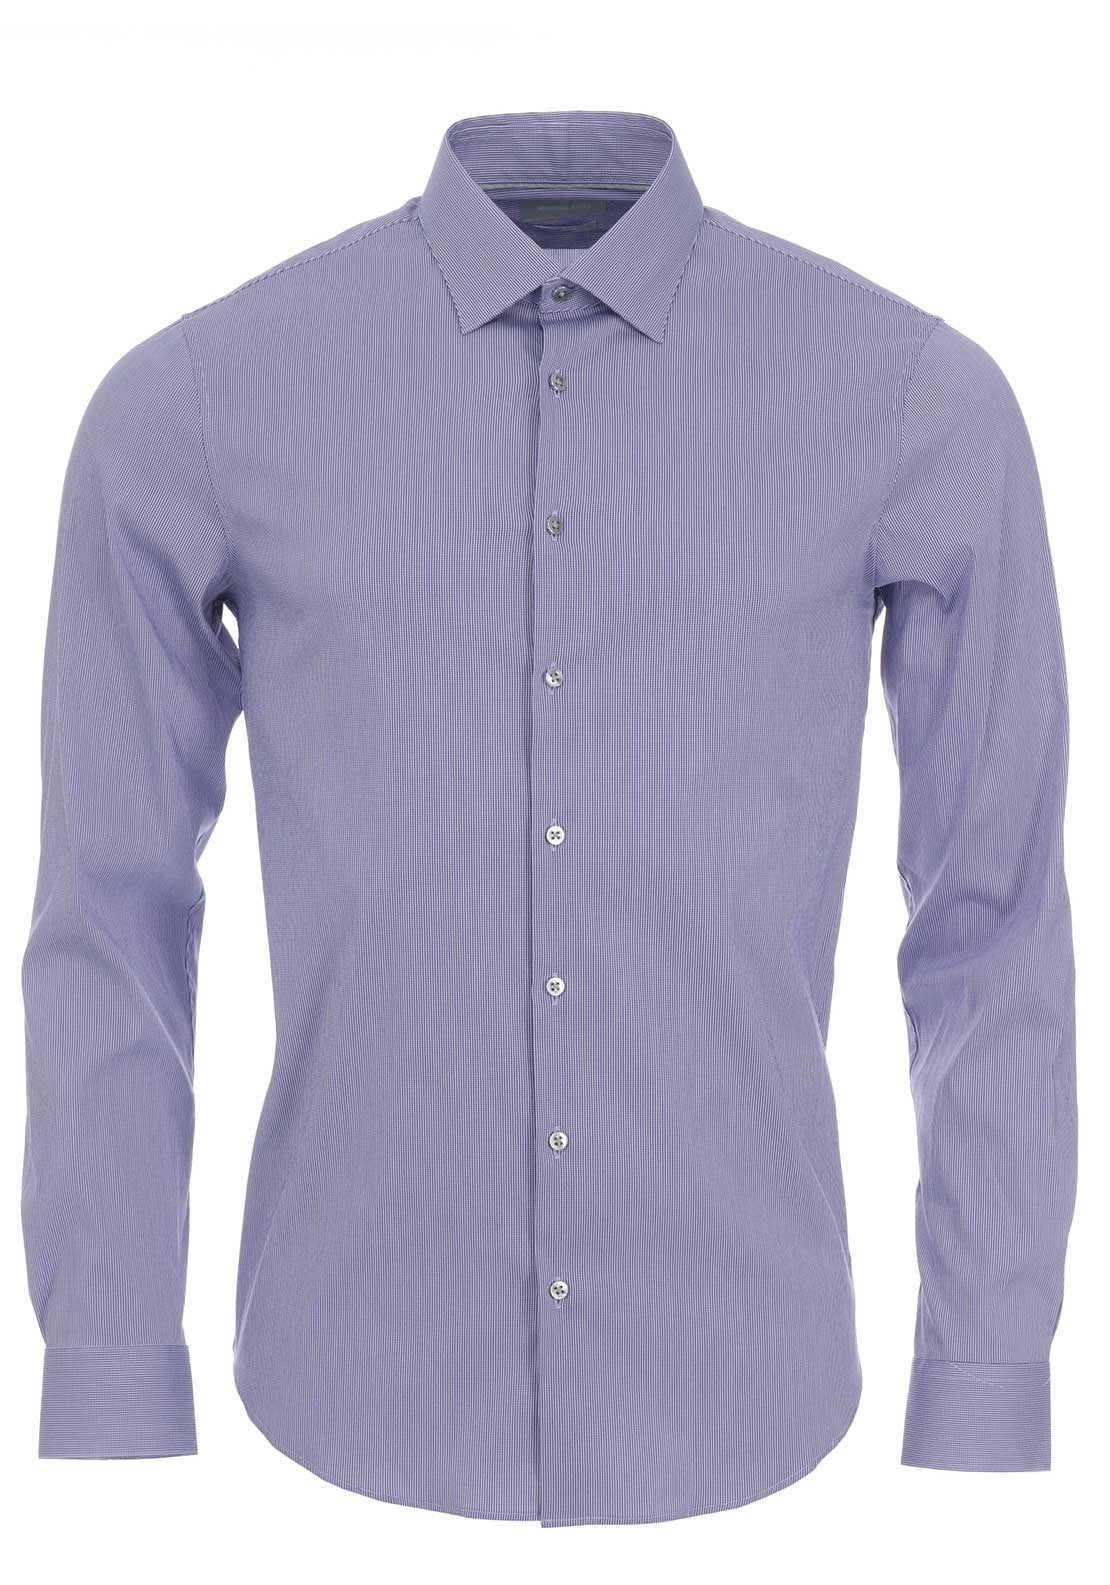 Michael Kors Raleigh Slim Fit Shirt, Purple